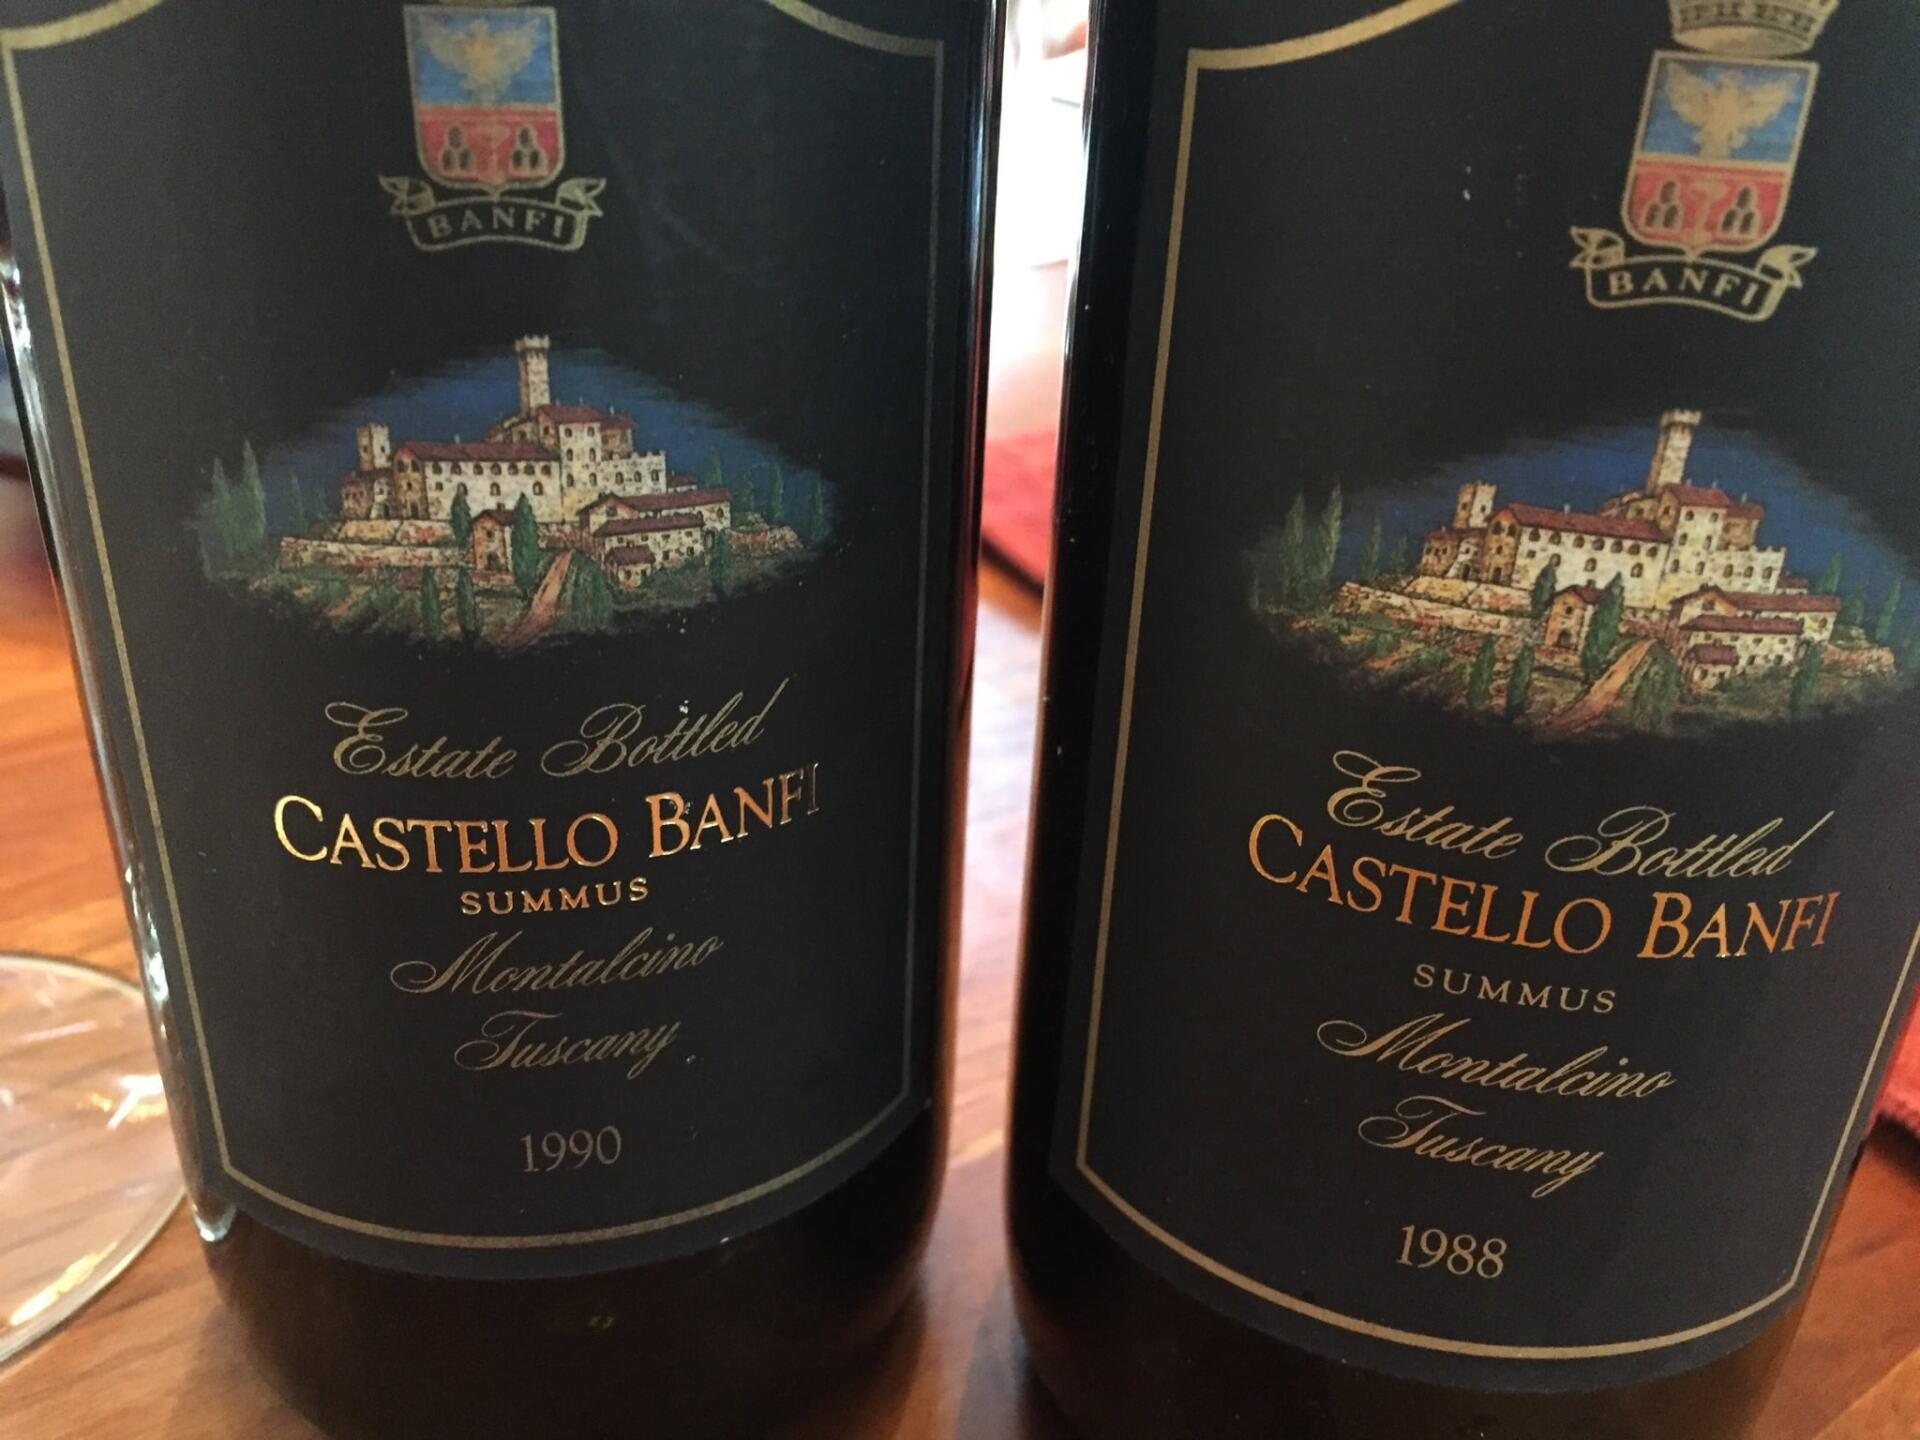 Summus wine bottles showing Castello Banfi